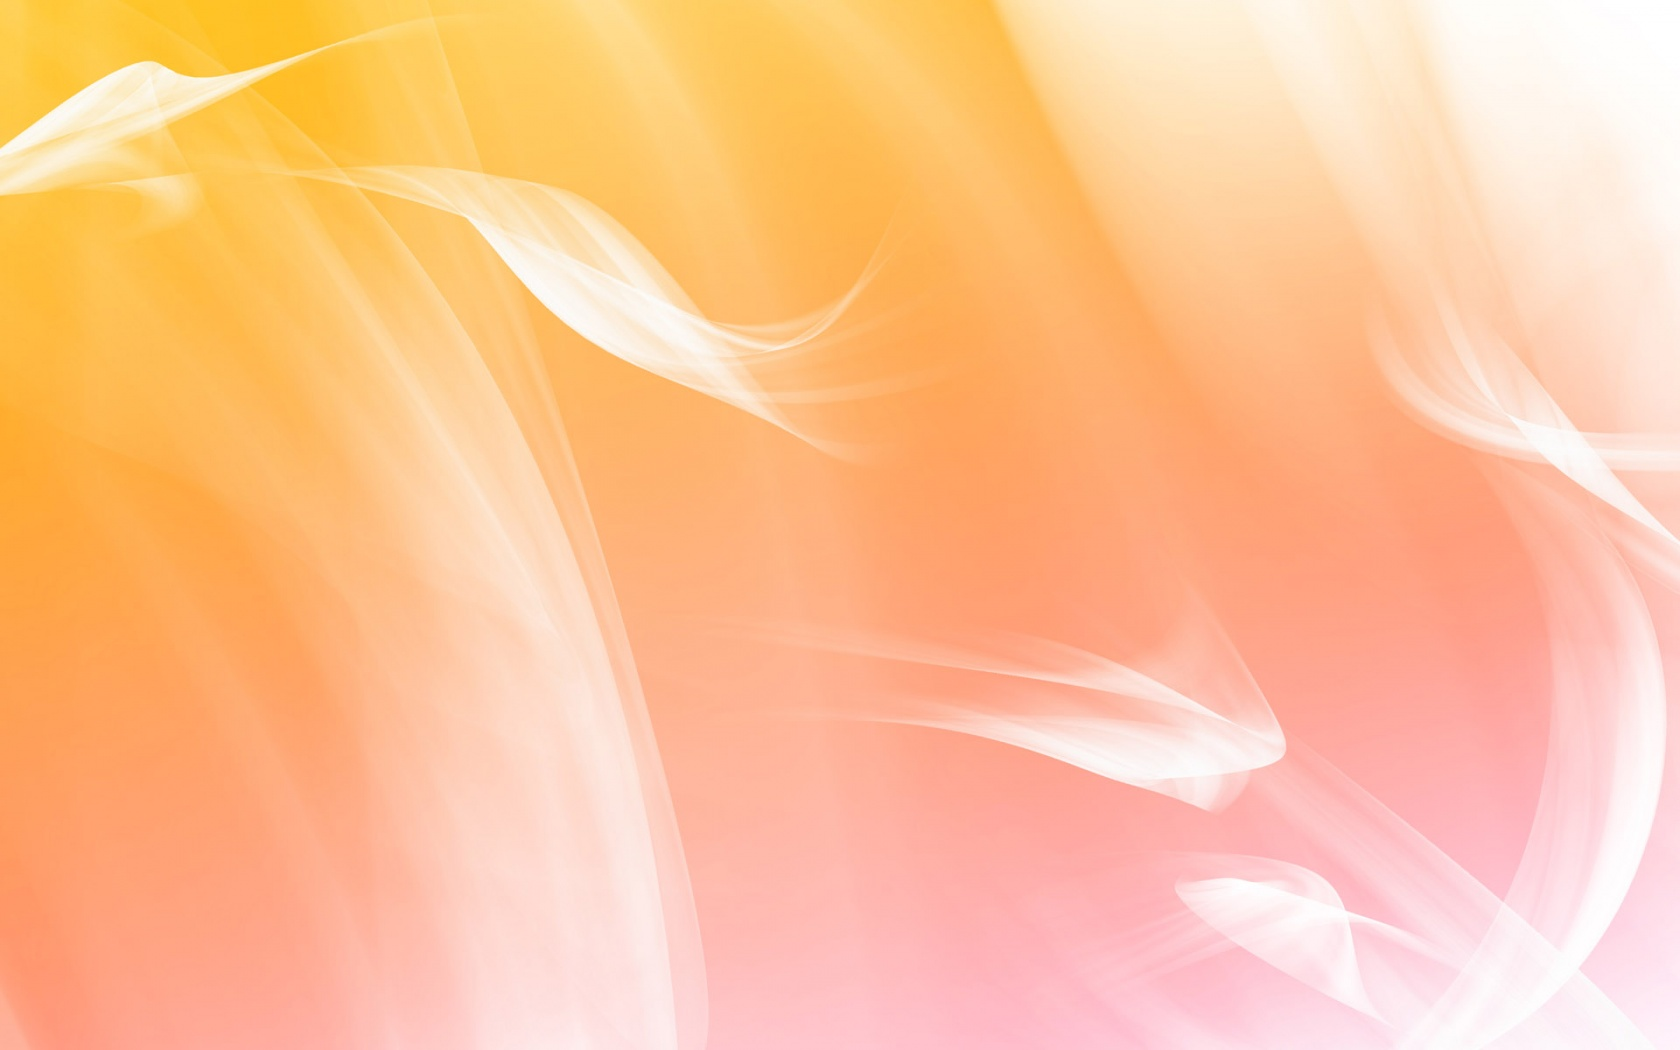 Yellow Pink Abstract 1680x1050 Wallpapers, 1680x1050 Wallpapers